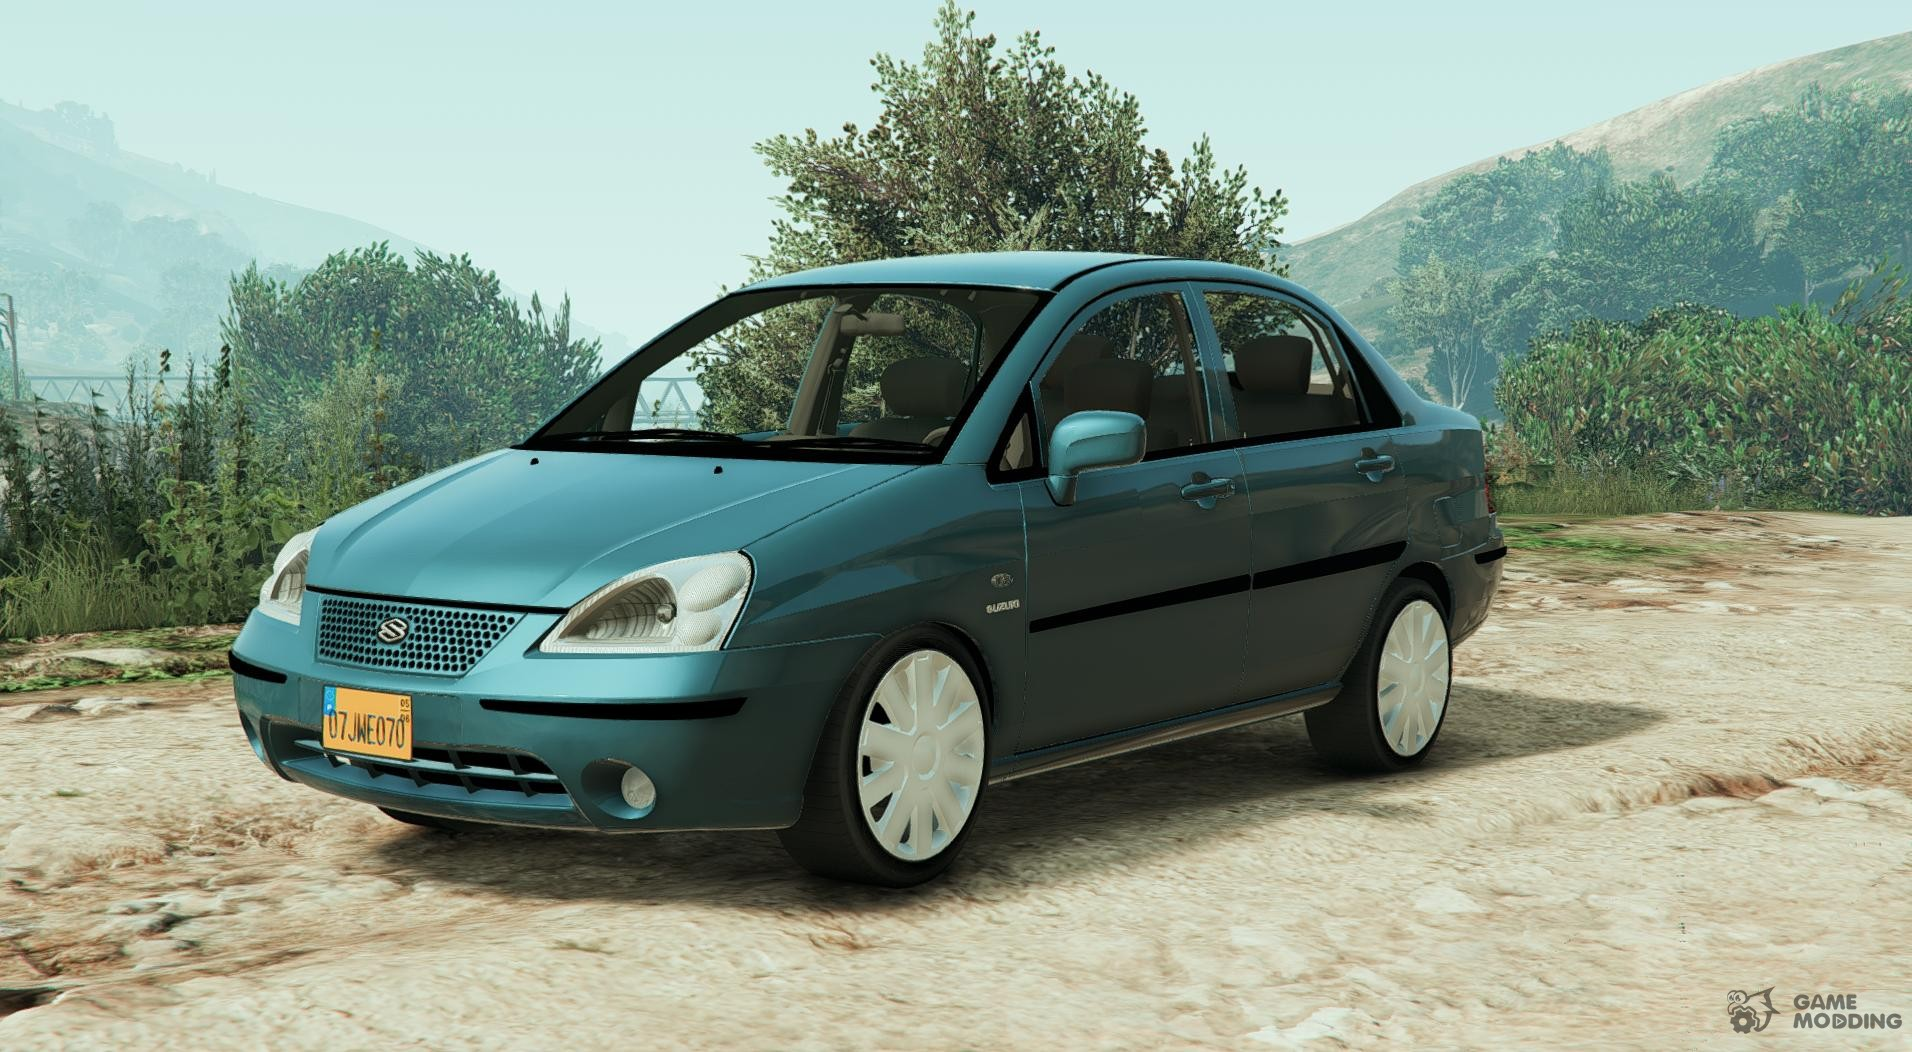 suzuki liana for gta 5. Black Bedroom Furniture Sets. Home Design Ideas